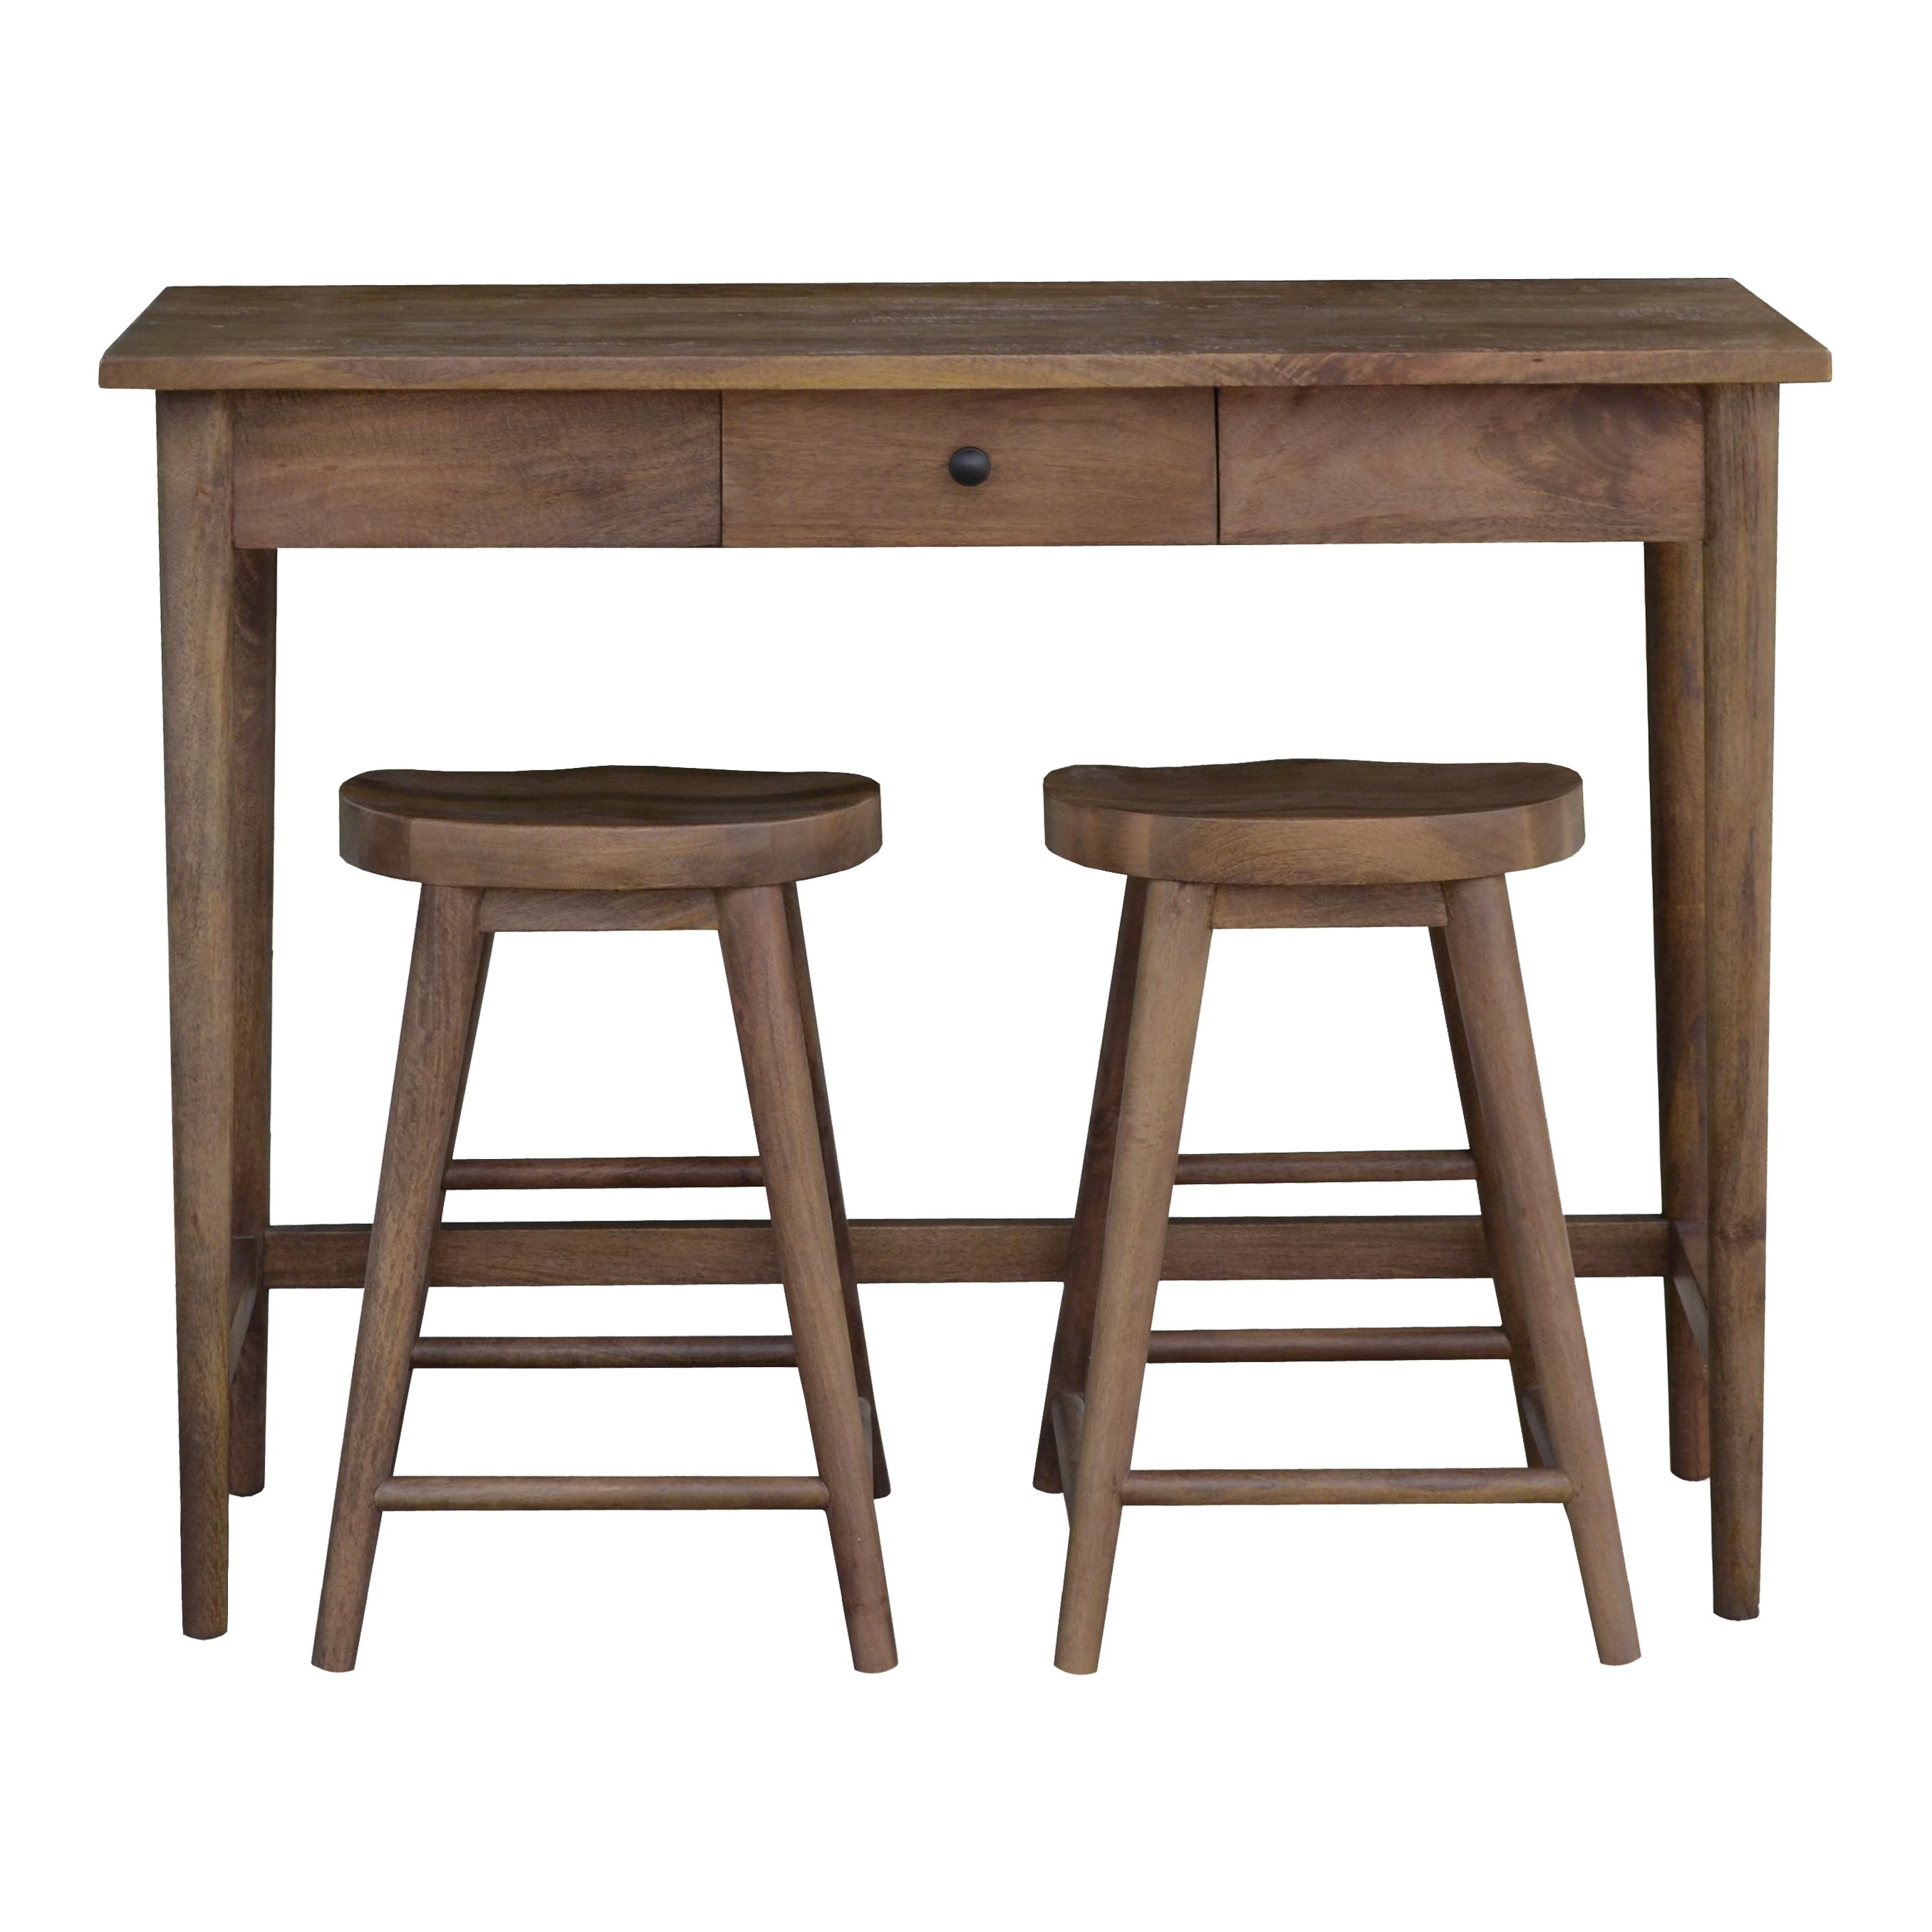 Linea oliver bar table 2 stools review for Bar stool table